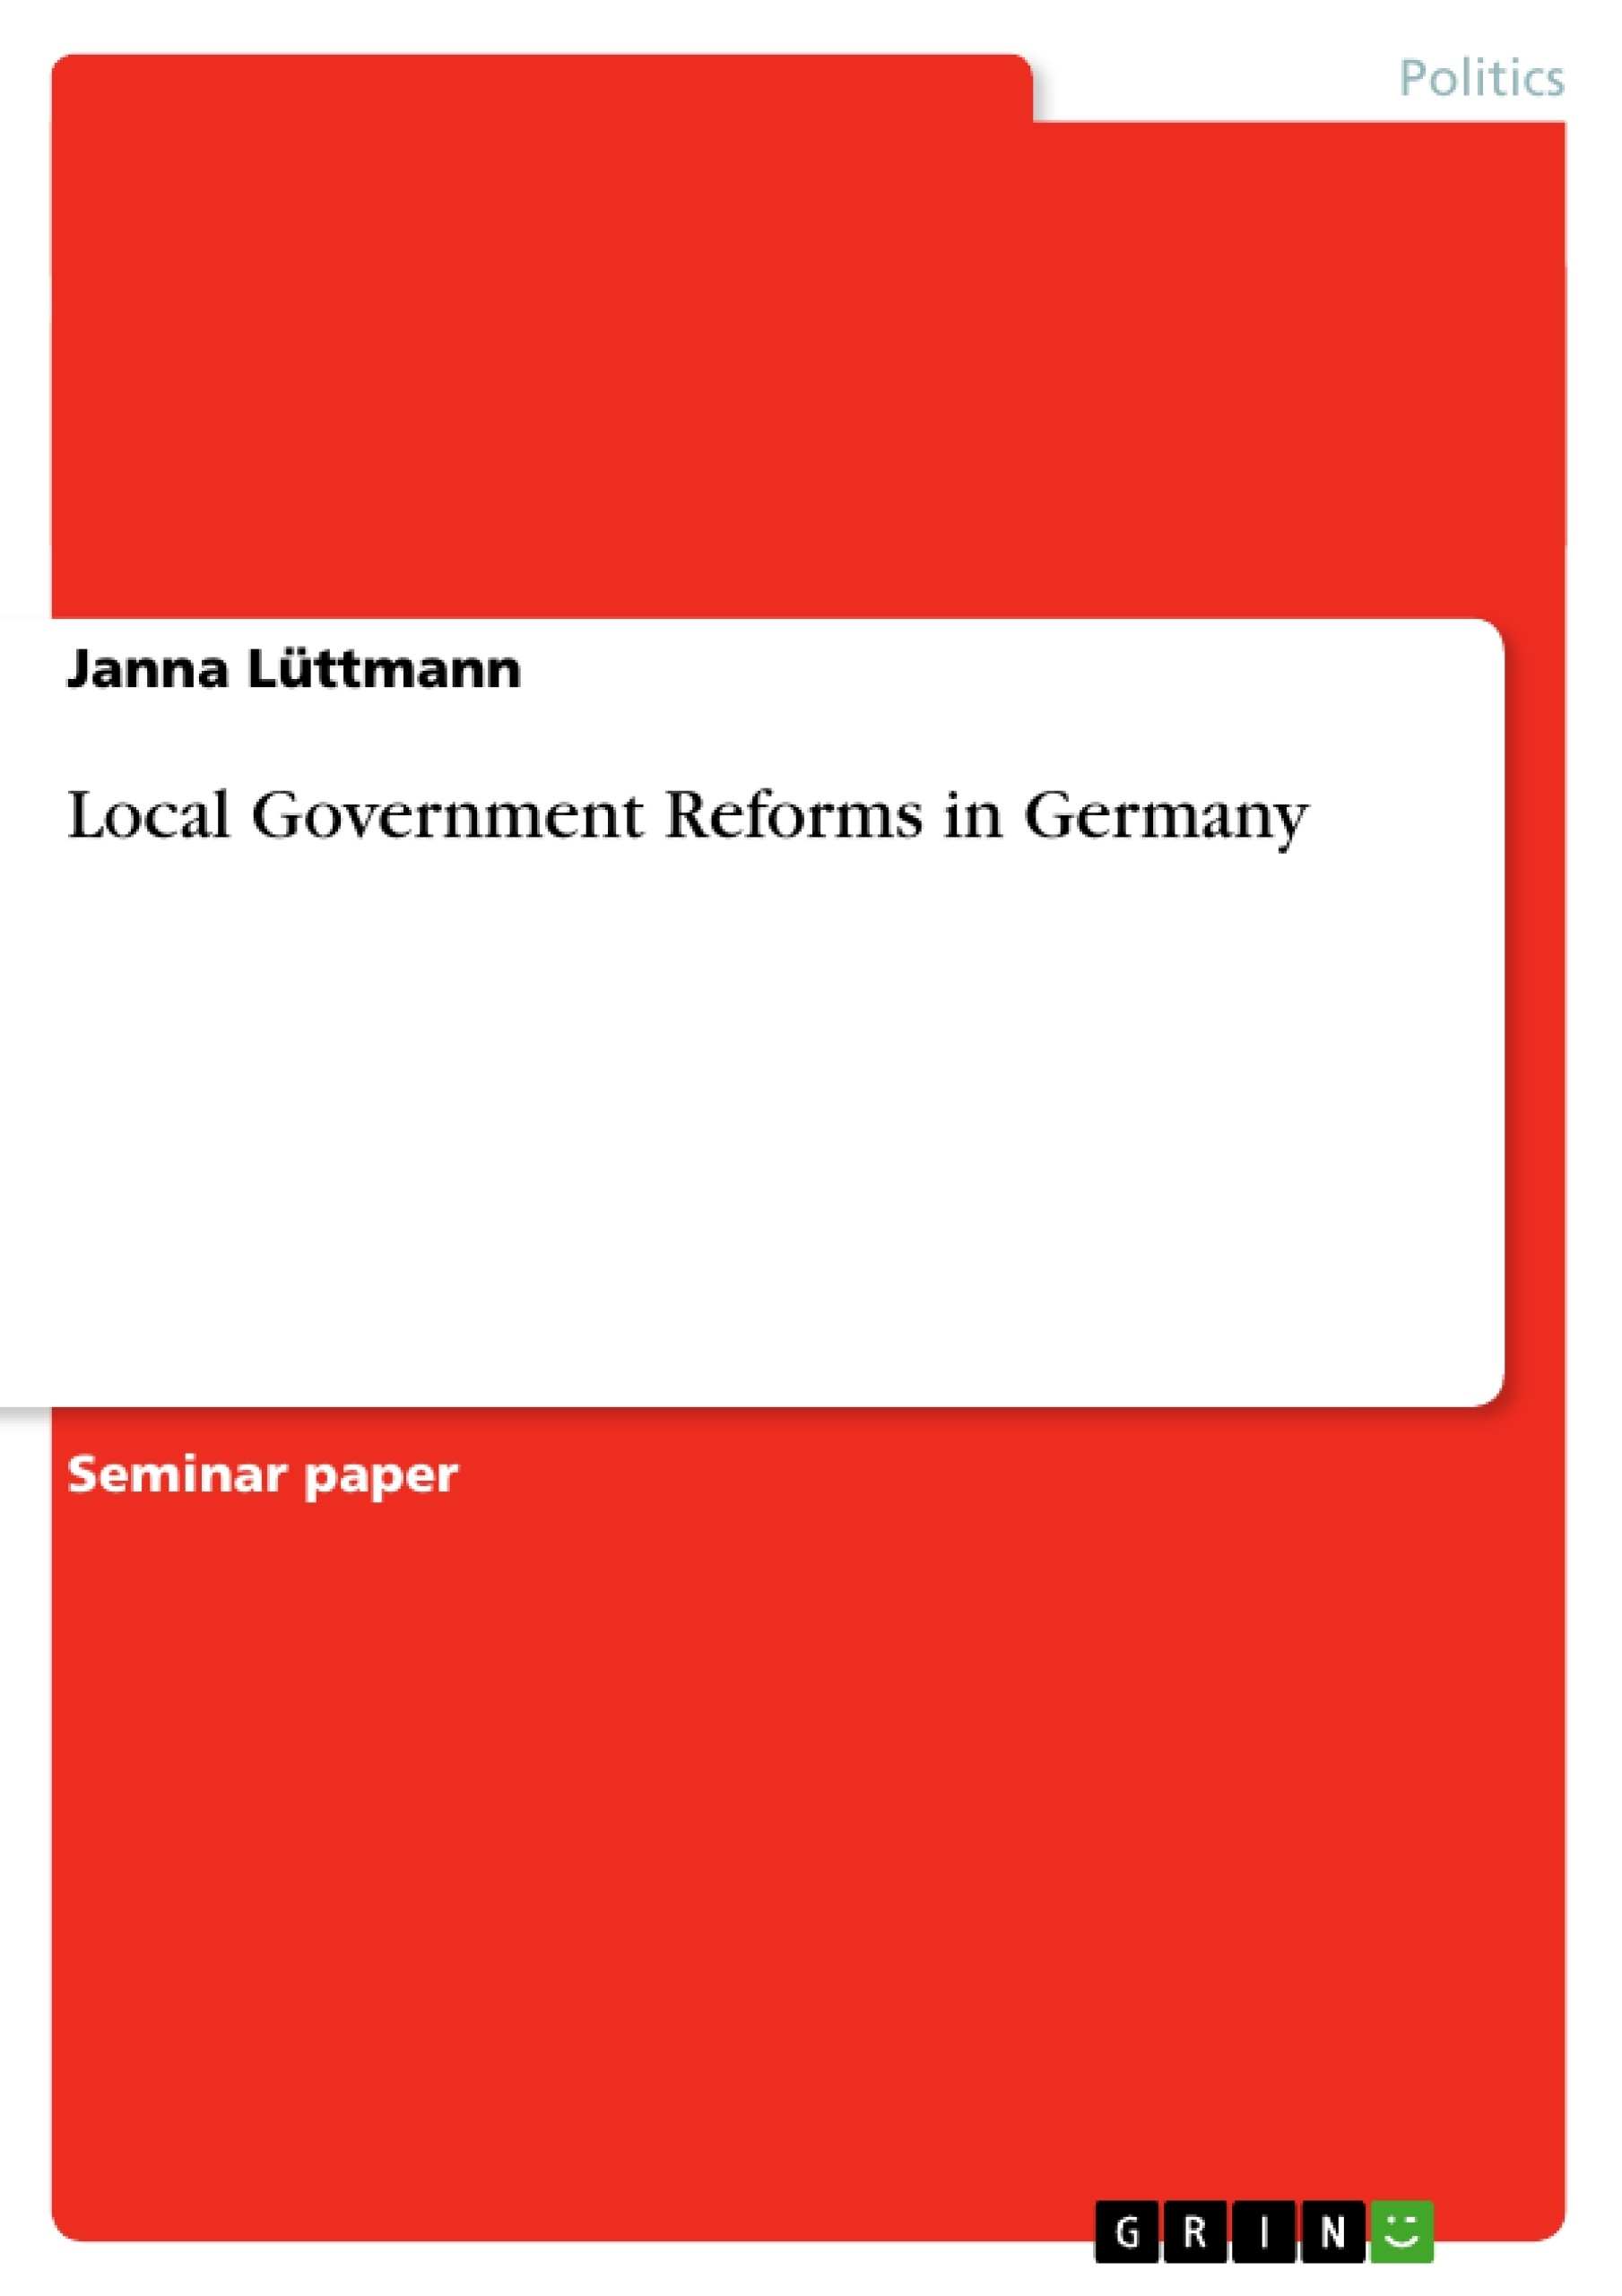 Local Government Reforms in Germany